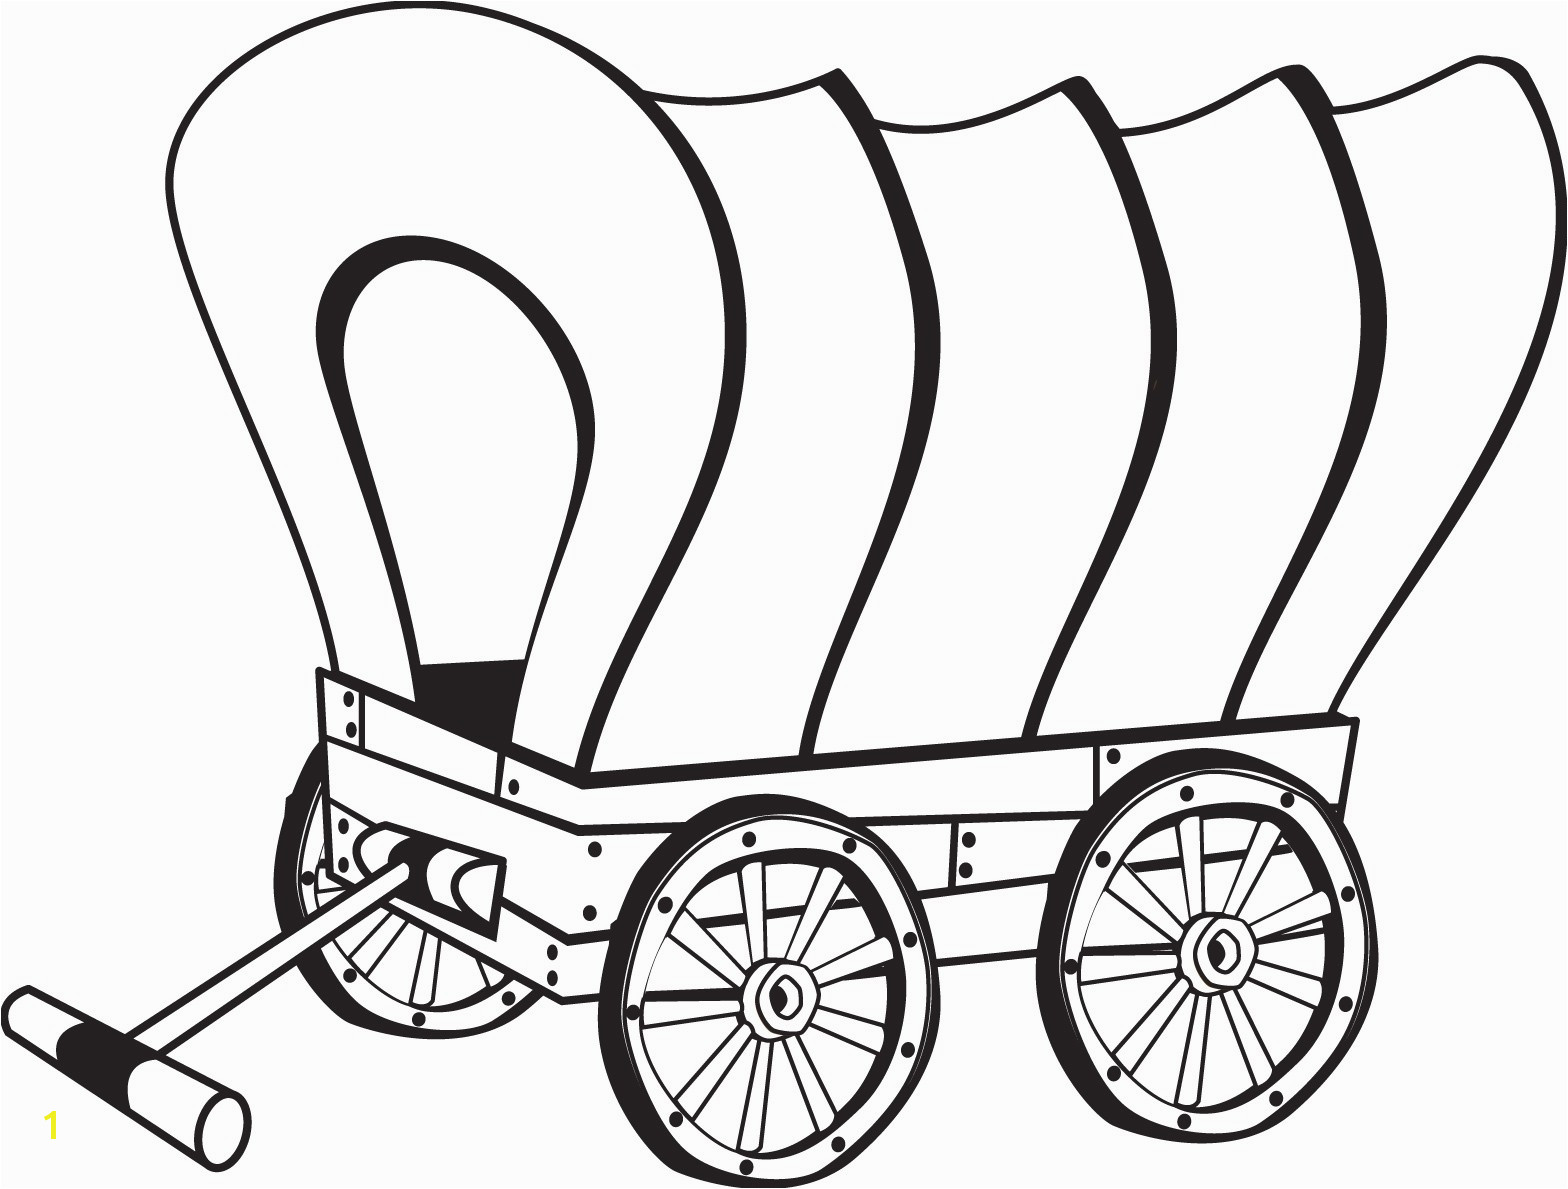 Chuck Wagon Coloring Page Awesome Awesome Covered Wagon Coloring Sheet Collection Chuck Wagon Coloring Page